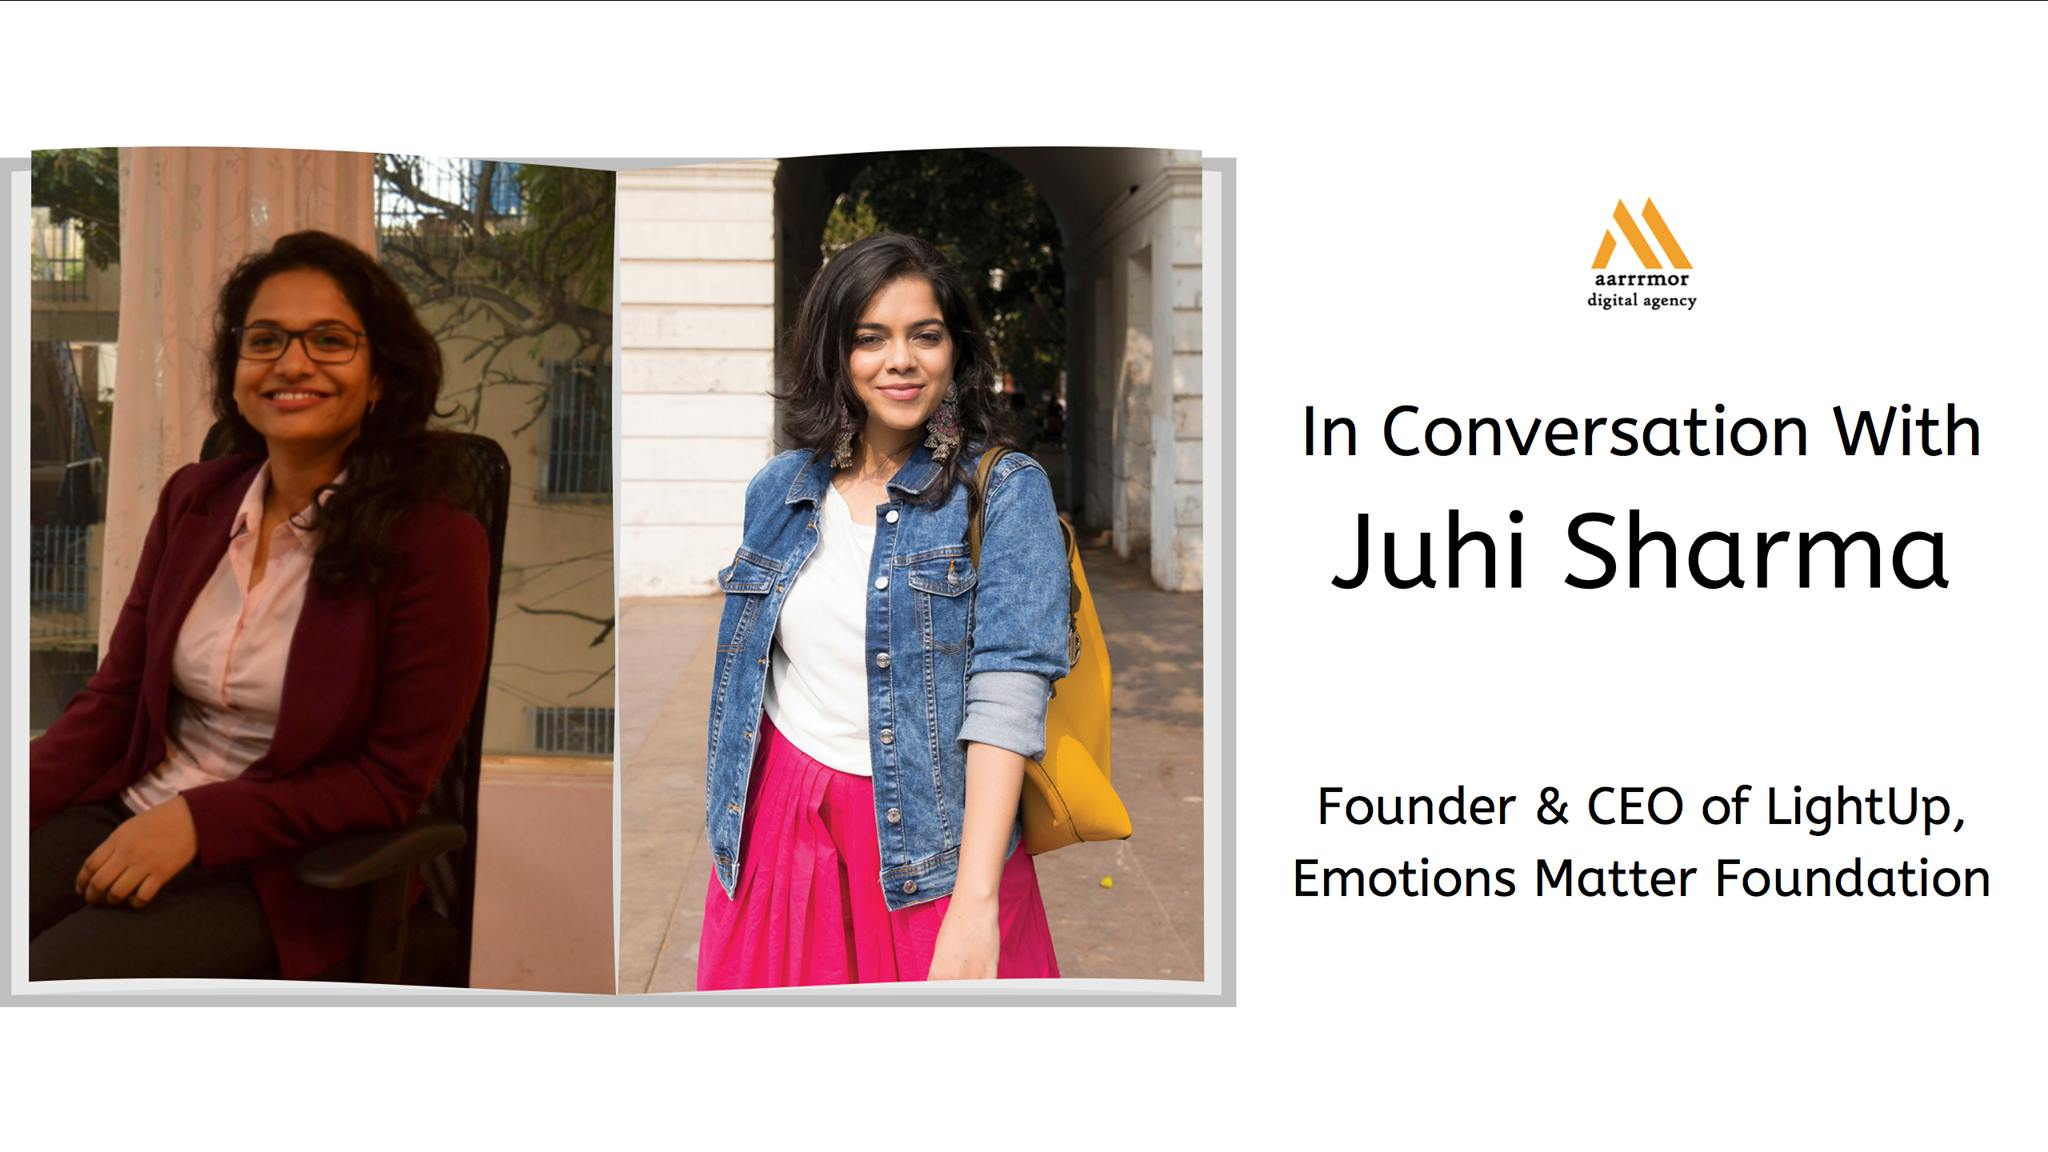 Founder Interview with Juhi Sharma, Founder & CEO of LightUp